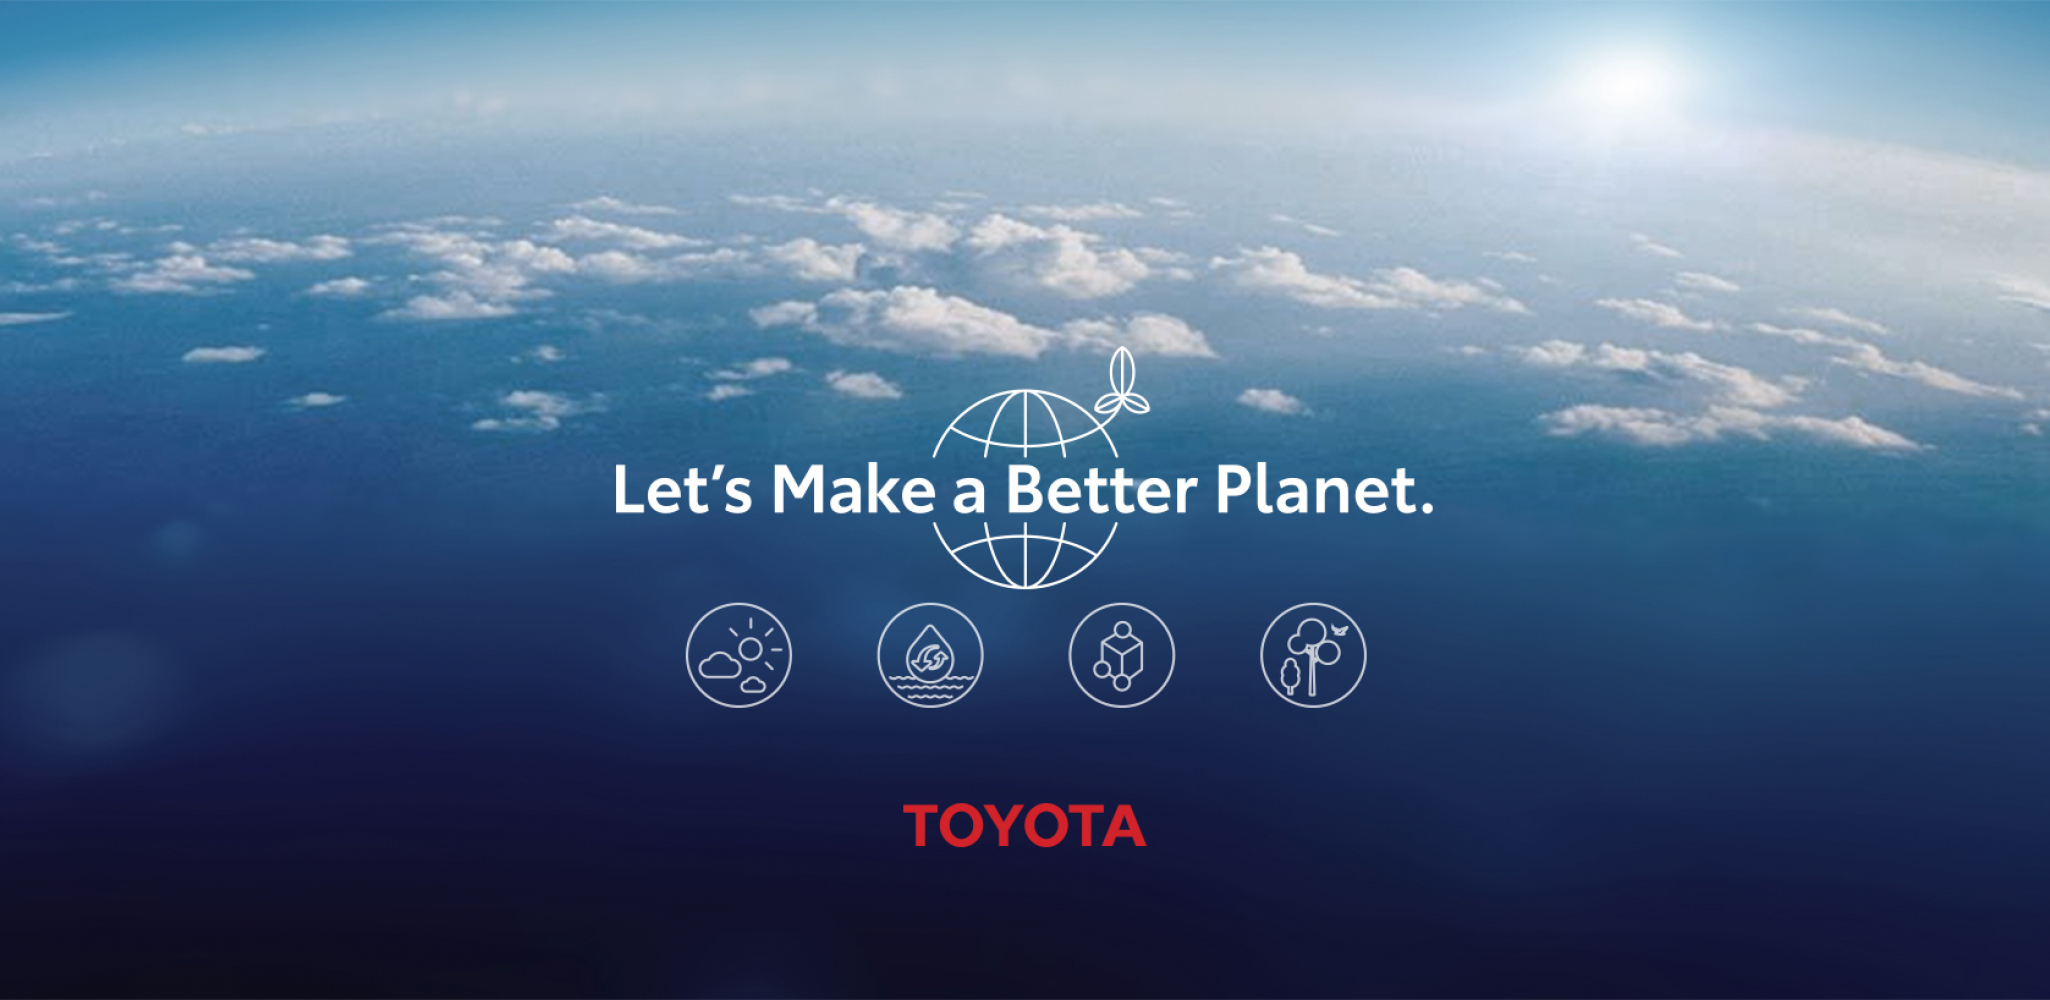 Turning Pledges into Actions: Toyota Collaborates with Suppliers to Tackle Environmental Challenges